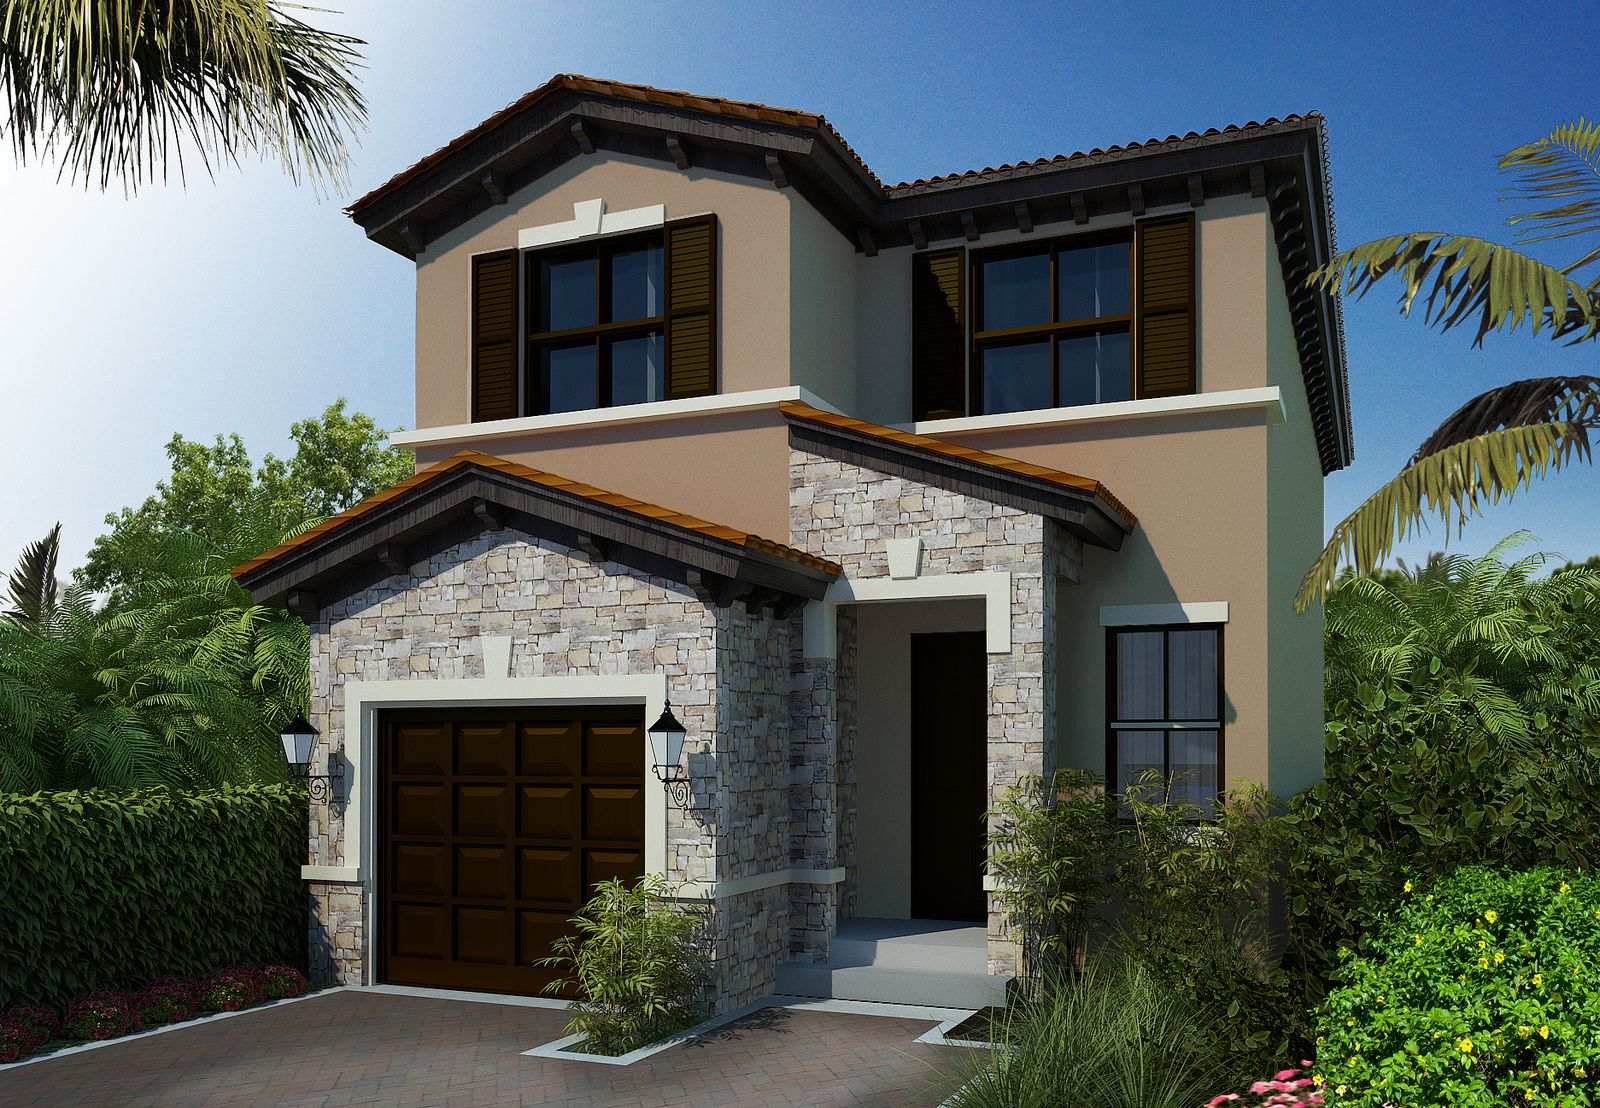 Fort lauderdale homes for sale homes for sale in fort for Houses for sale with pictures